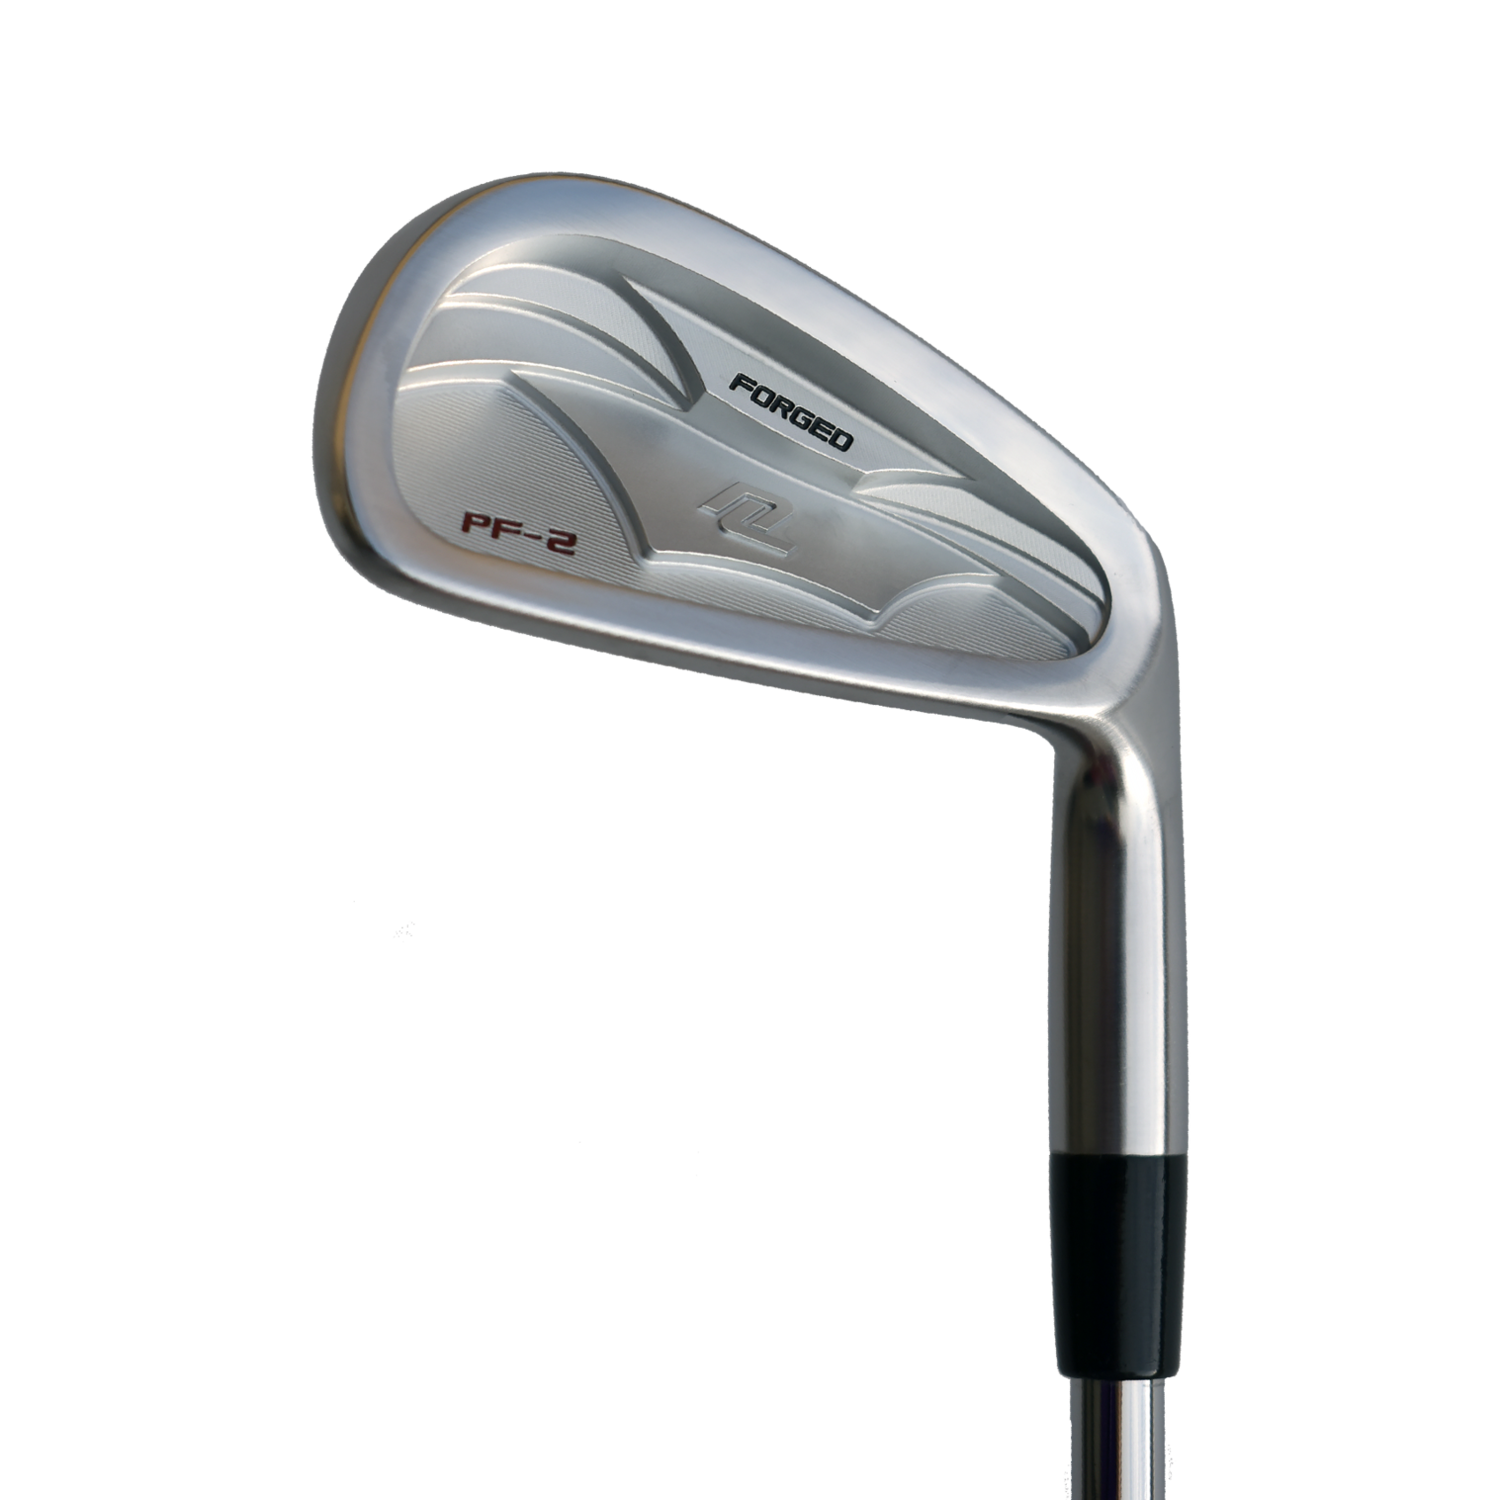 PF-2 Forged Irons (PRE-ORDER)